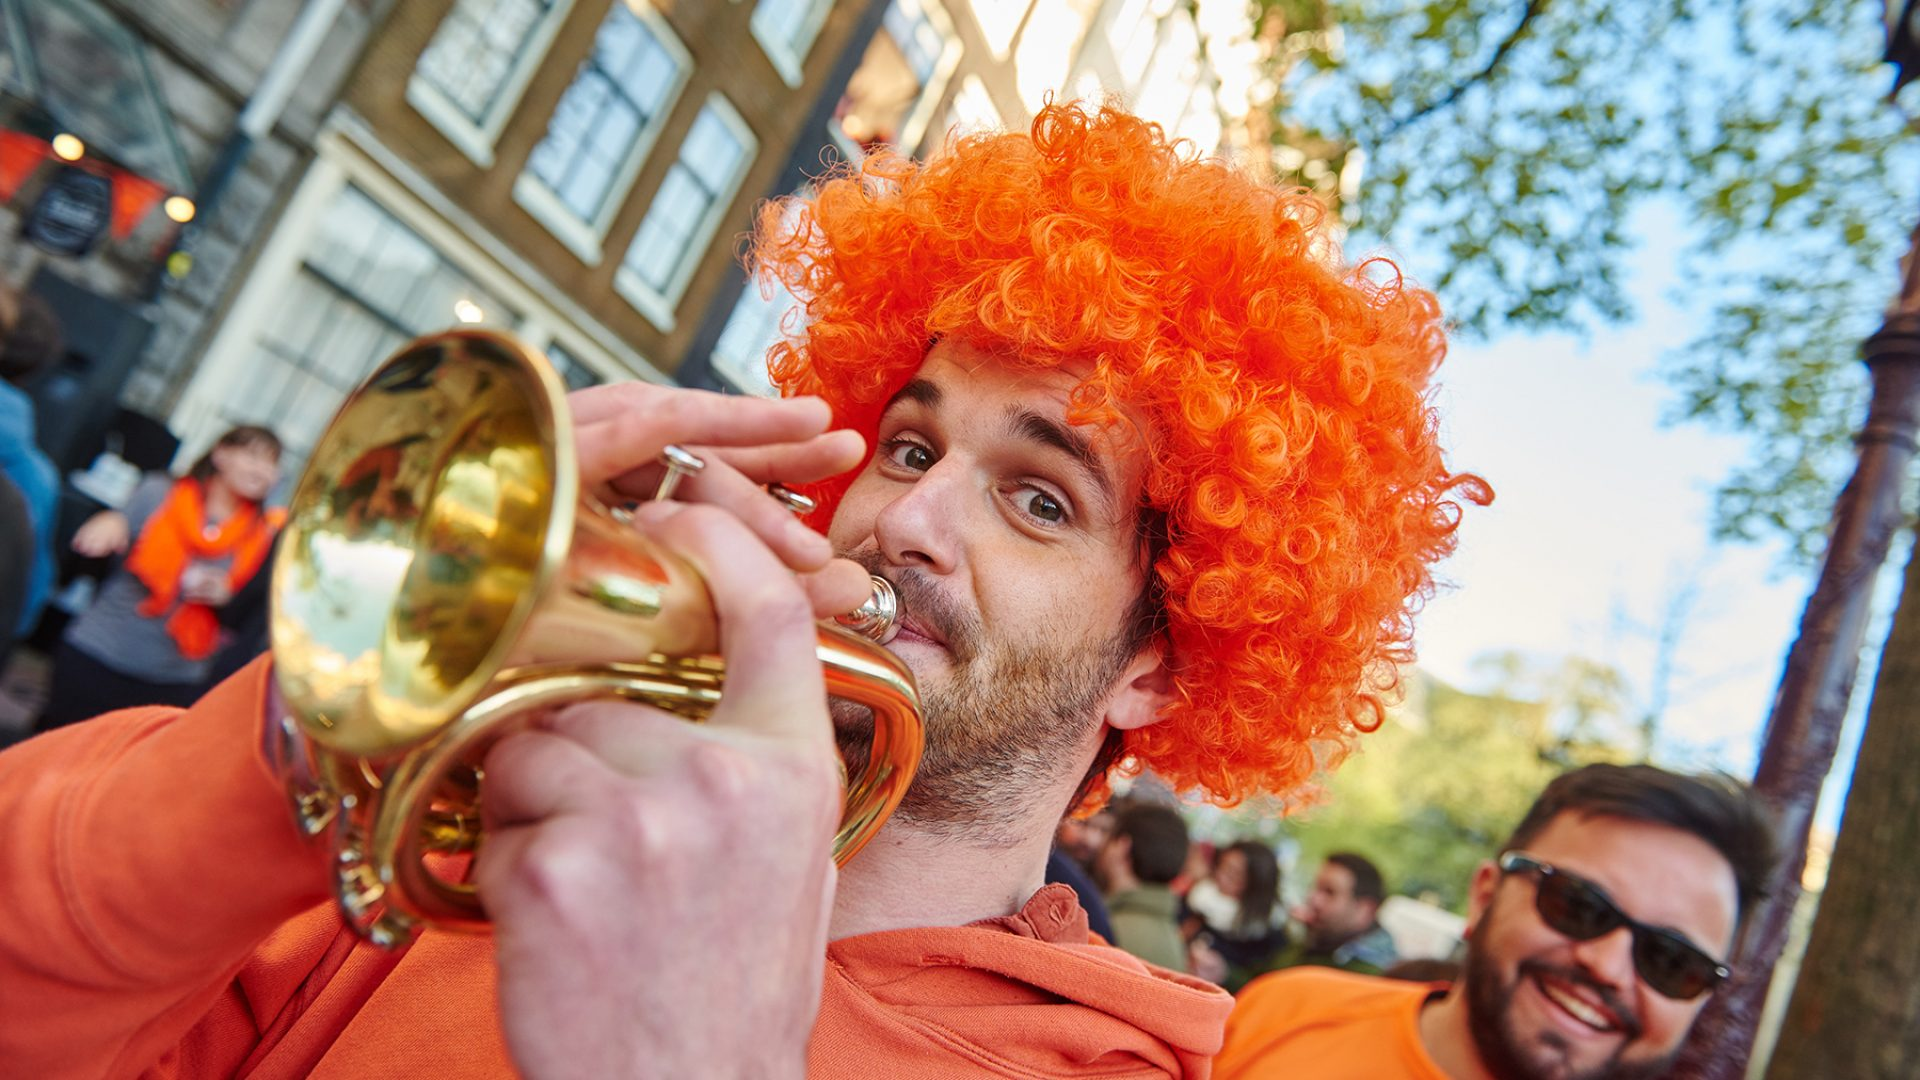 kings day netherlands